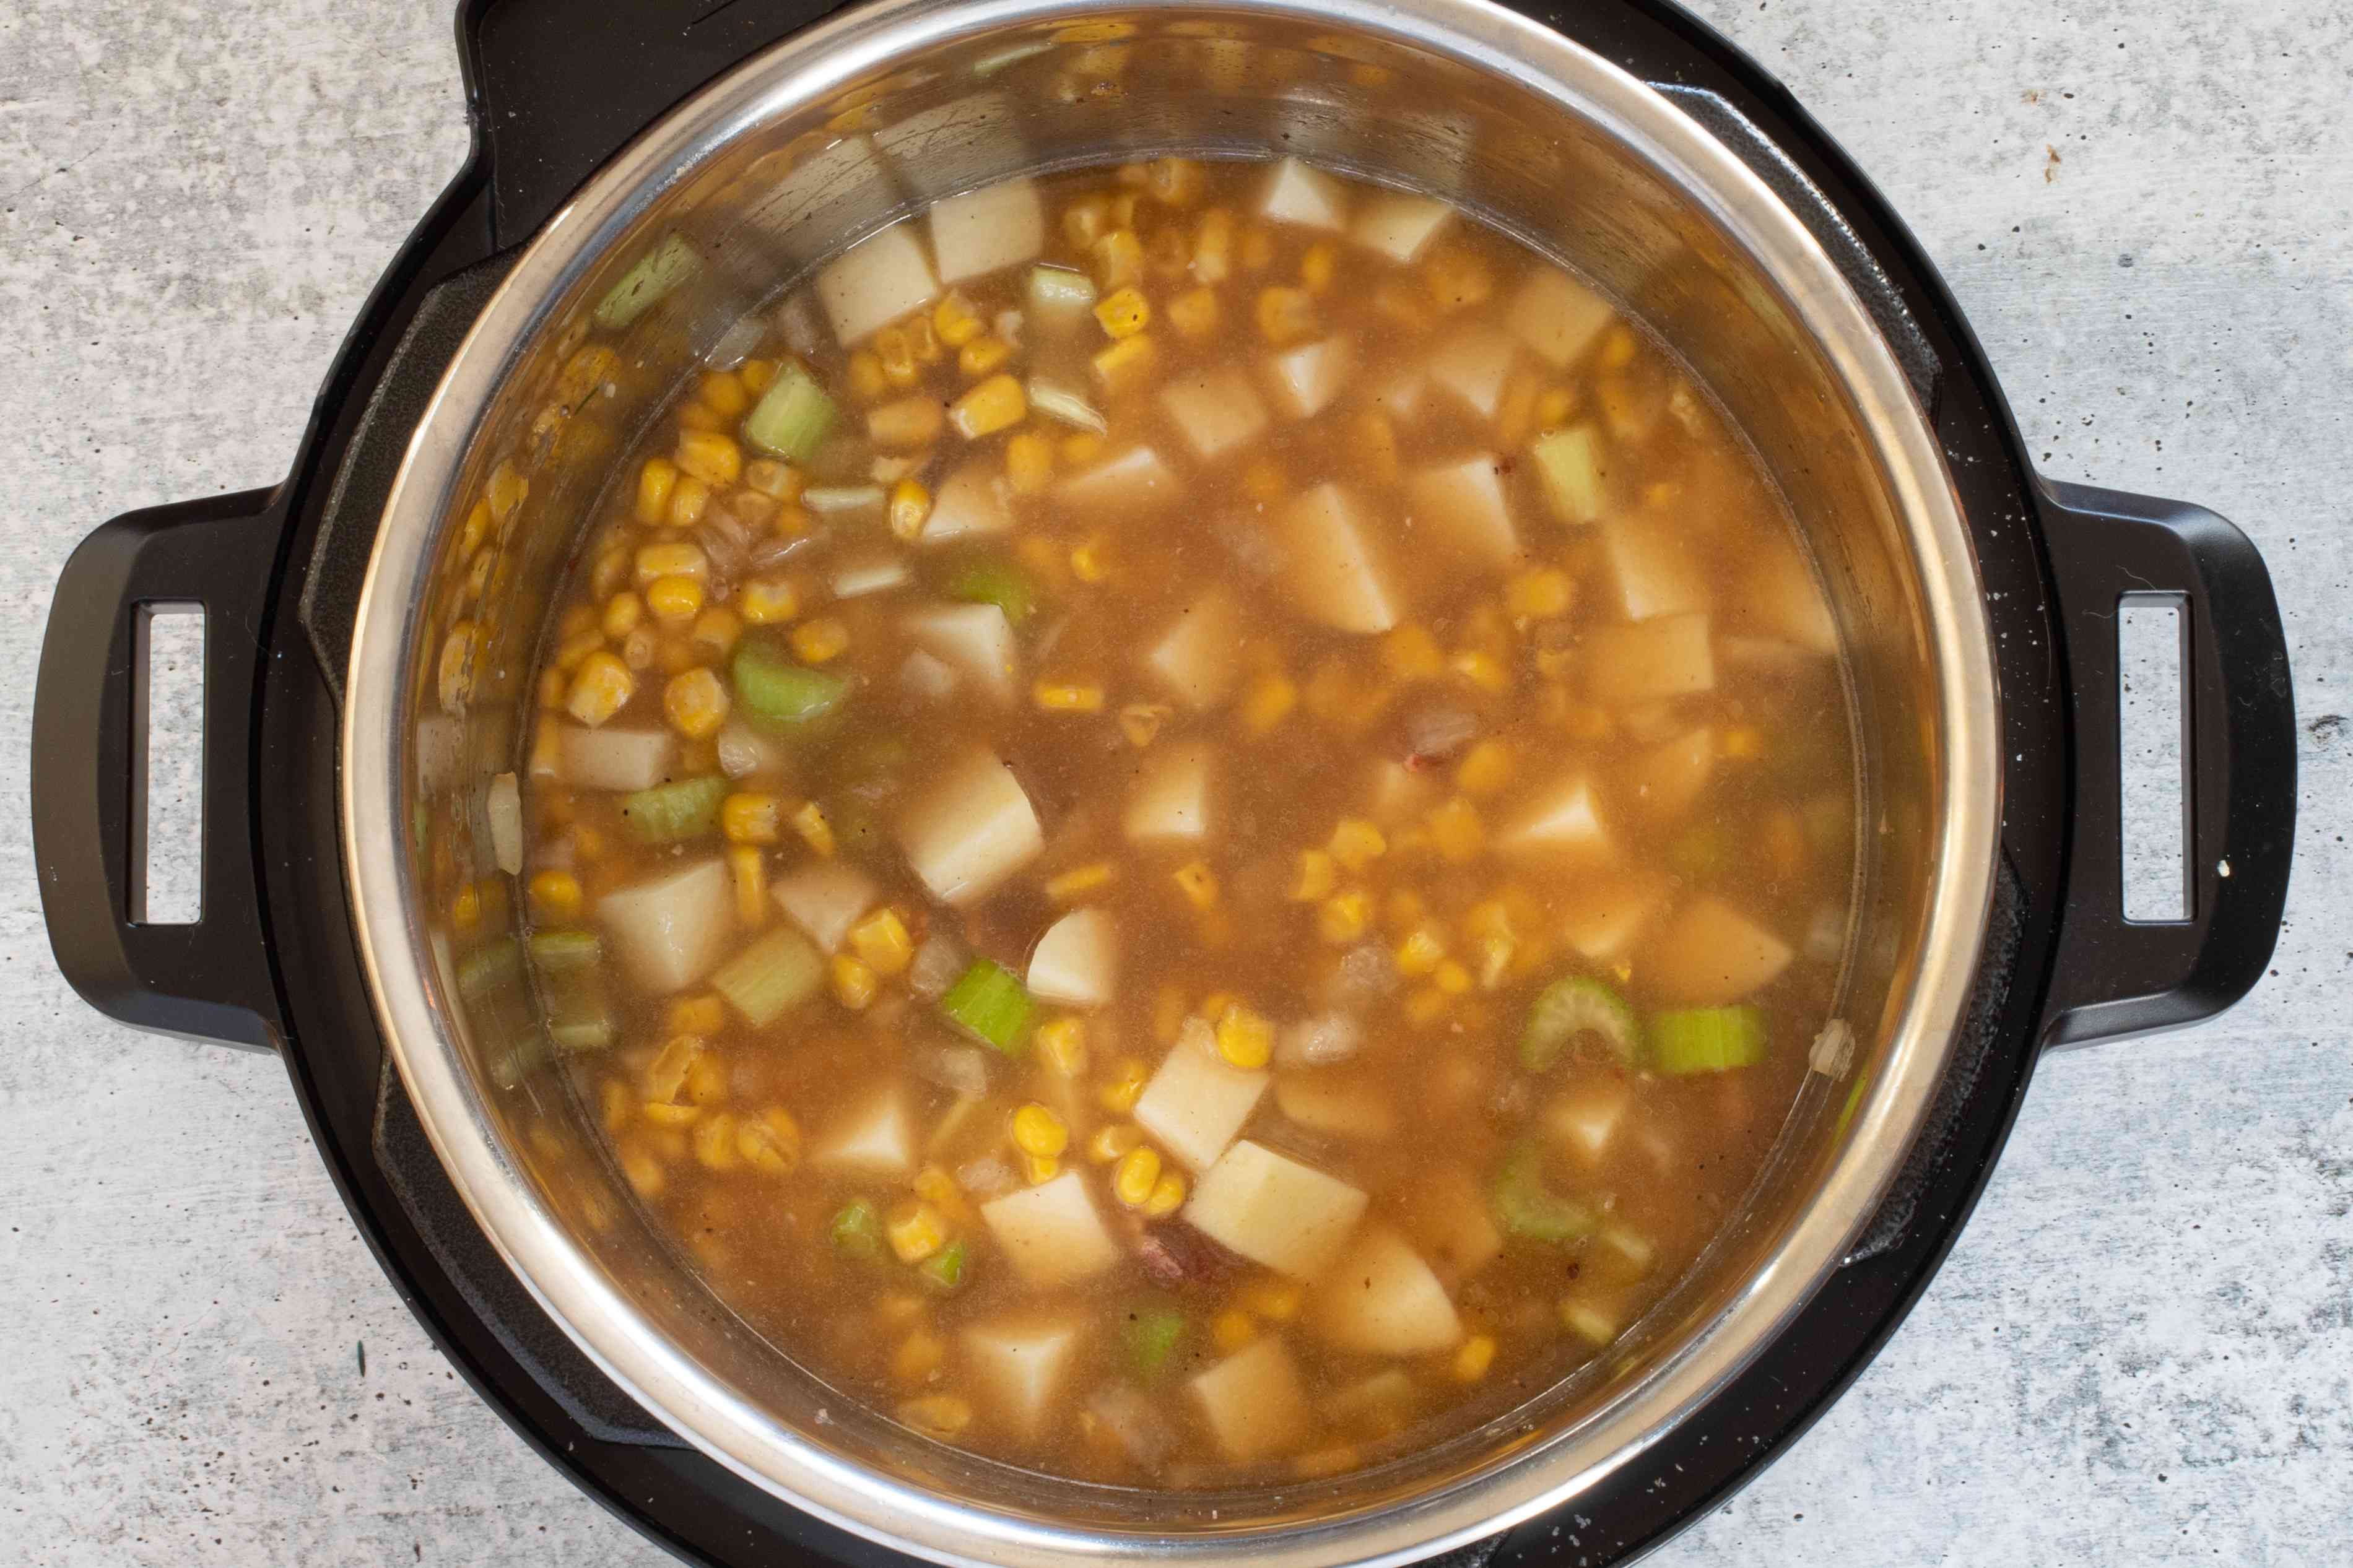 corn chowder mixture ready to cook